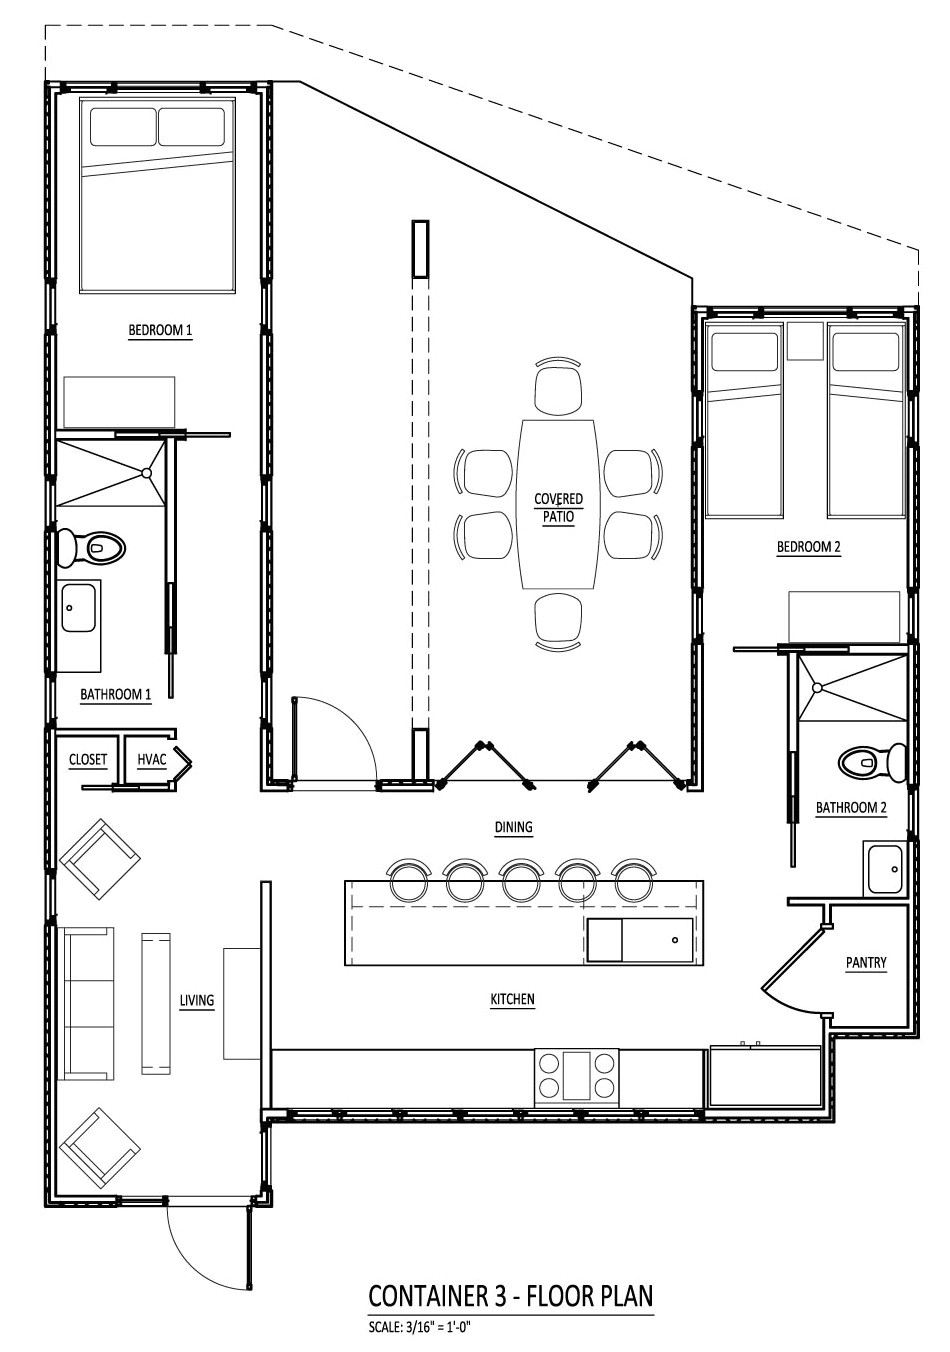 Floor Plans for Storage Container Homes Sense and Simplicity Shipping Container Homes 6